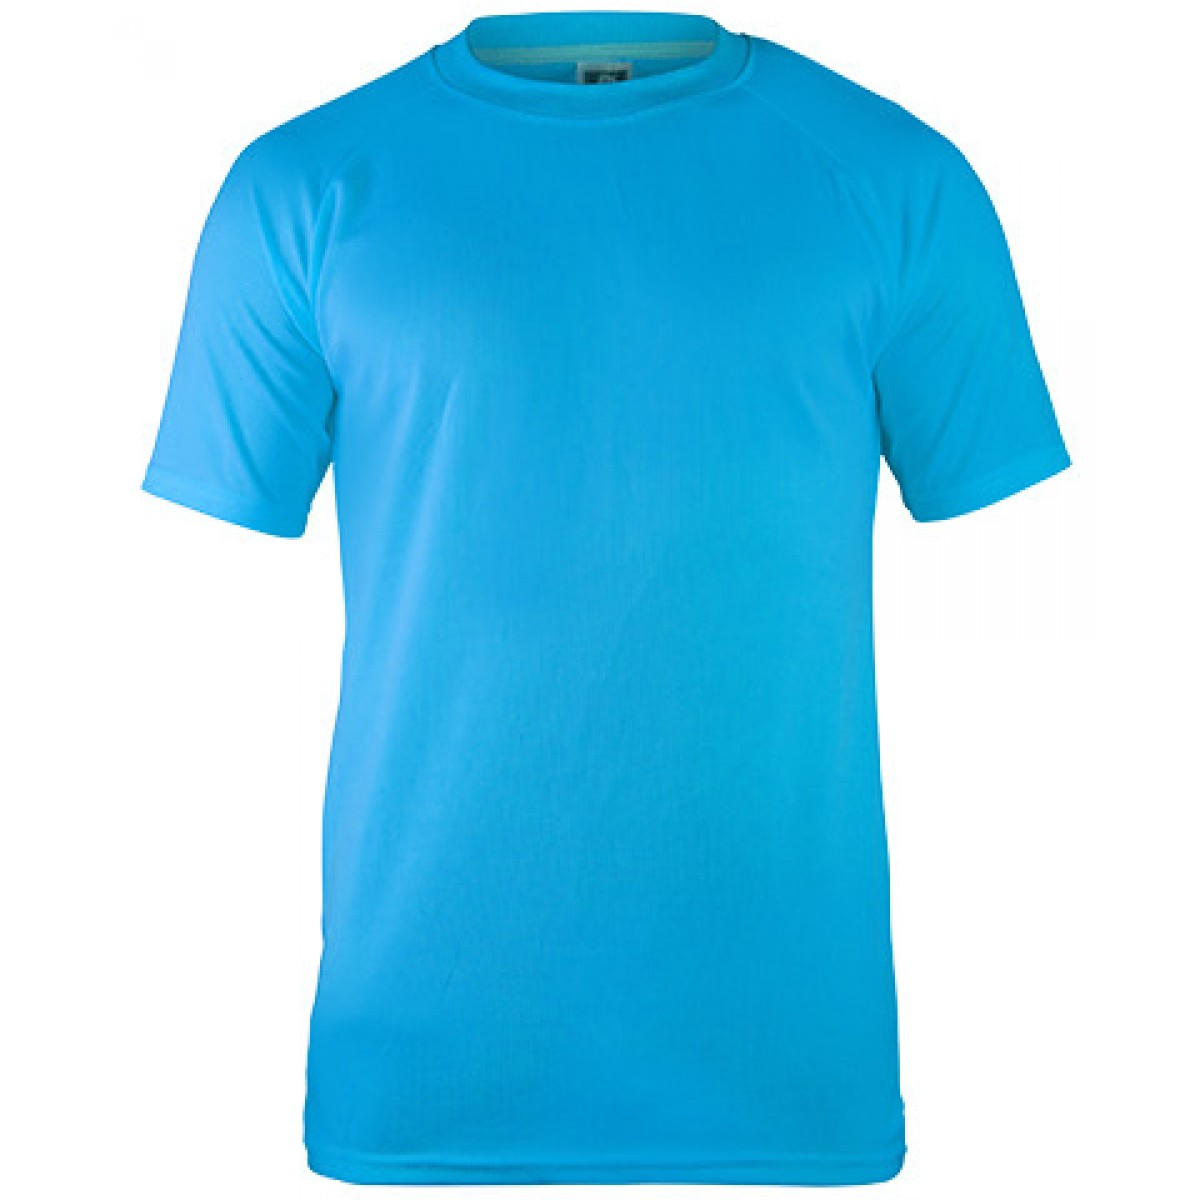 Short Sleeves Mesh Performance T-shirt-Blue-2XL